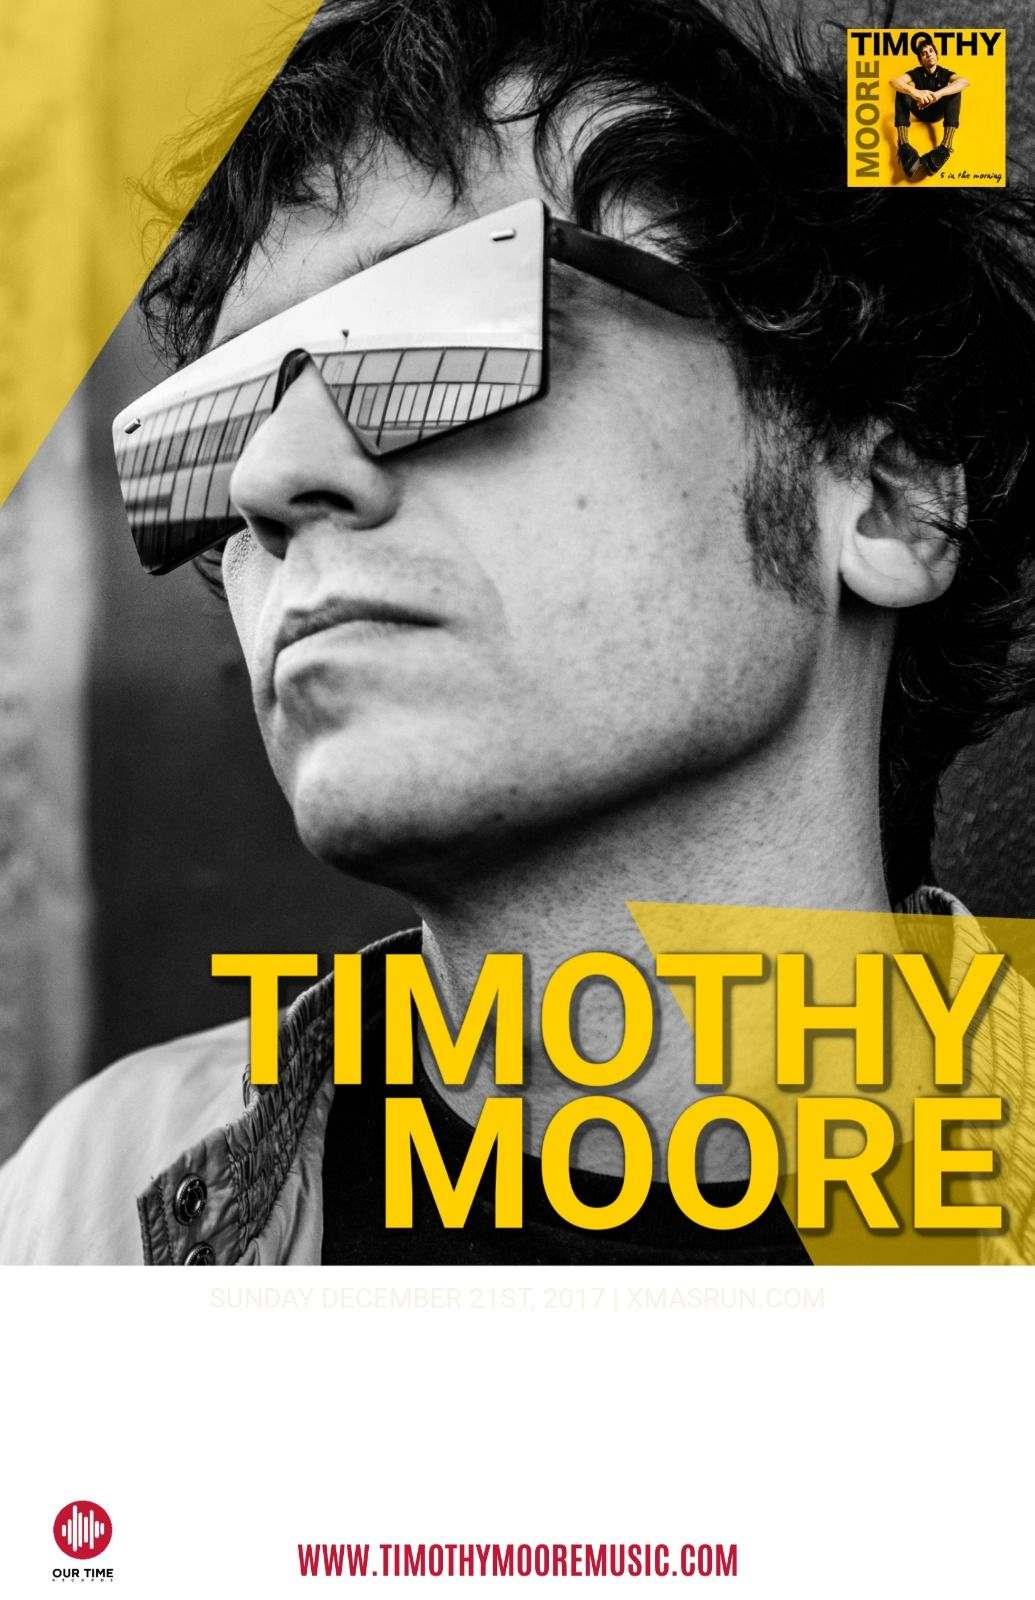 Timothy Moore, quattro date in Italia con la hit 5 in the morning